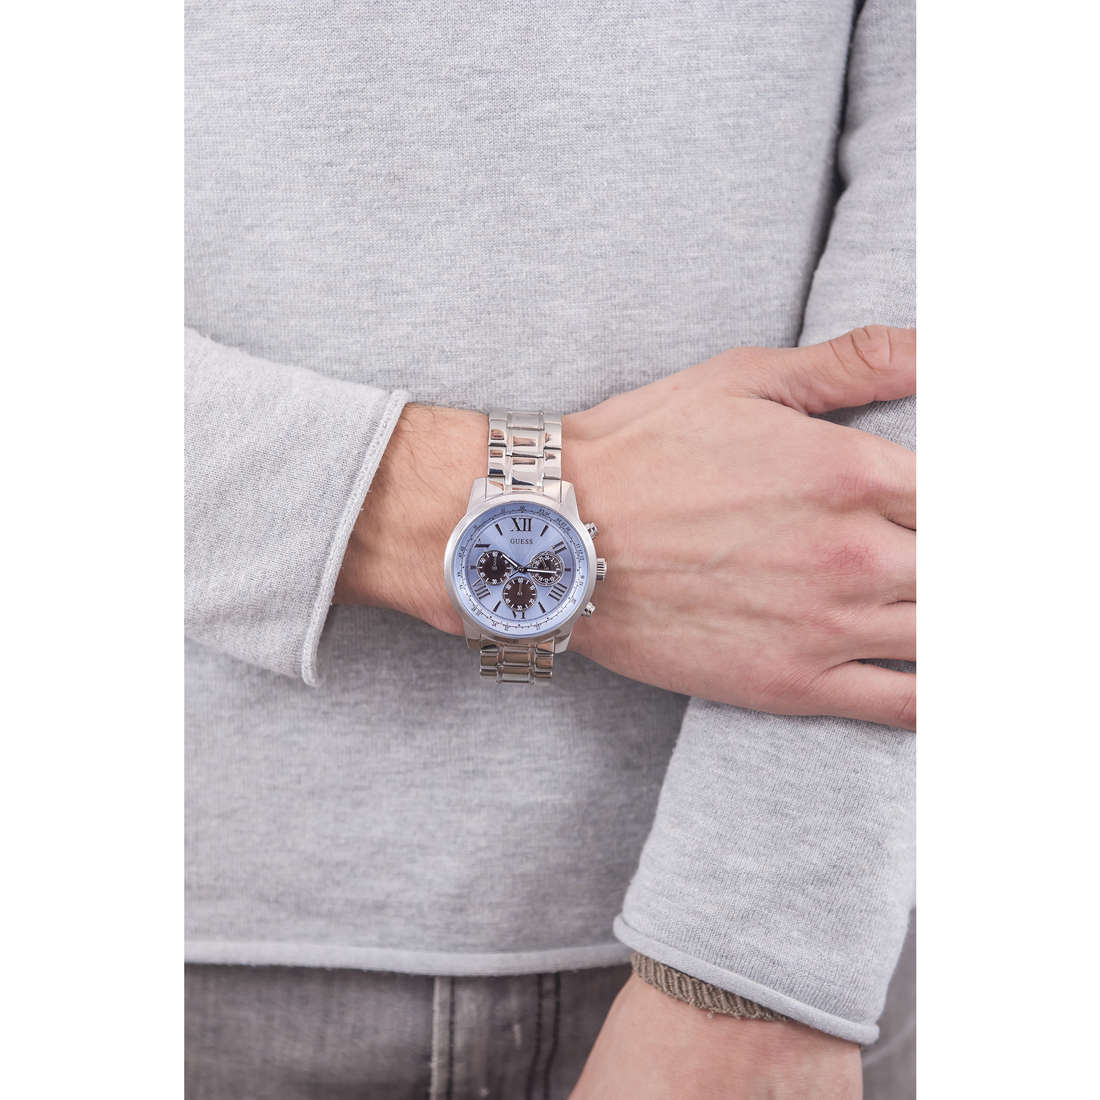 Guess chronographes Horizon homme W0379G6 photo wearing